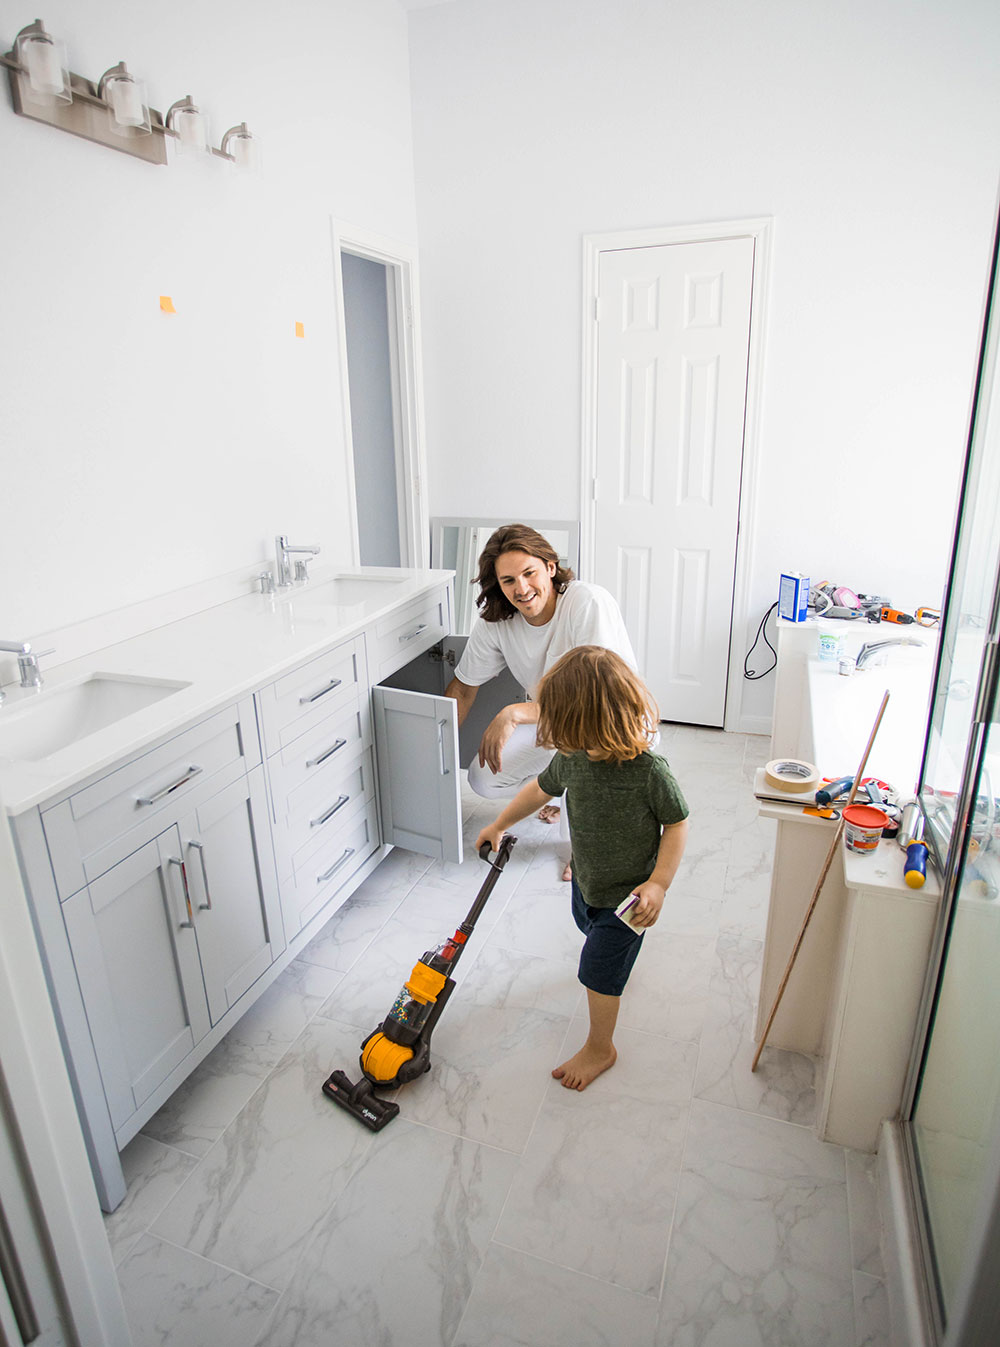 Bathroom Renovations - Not as Difficult as Expected